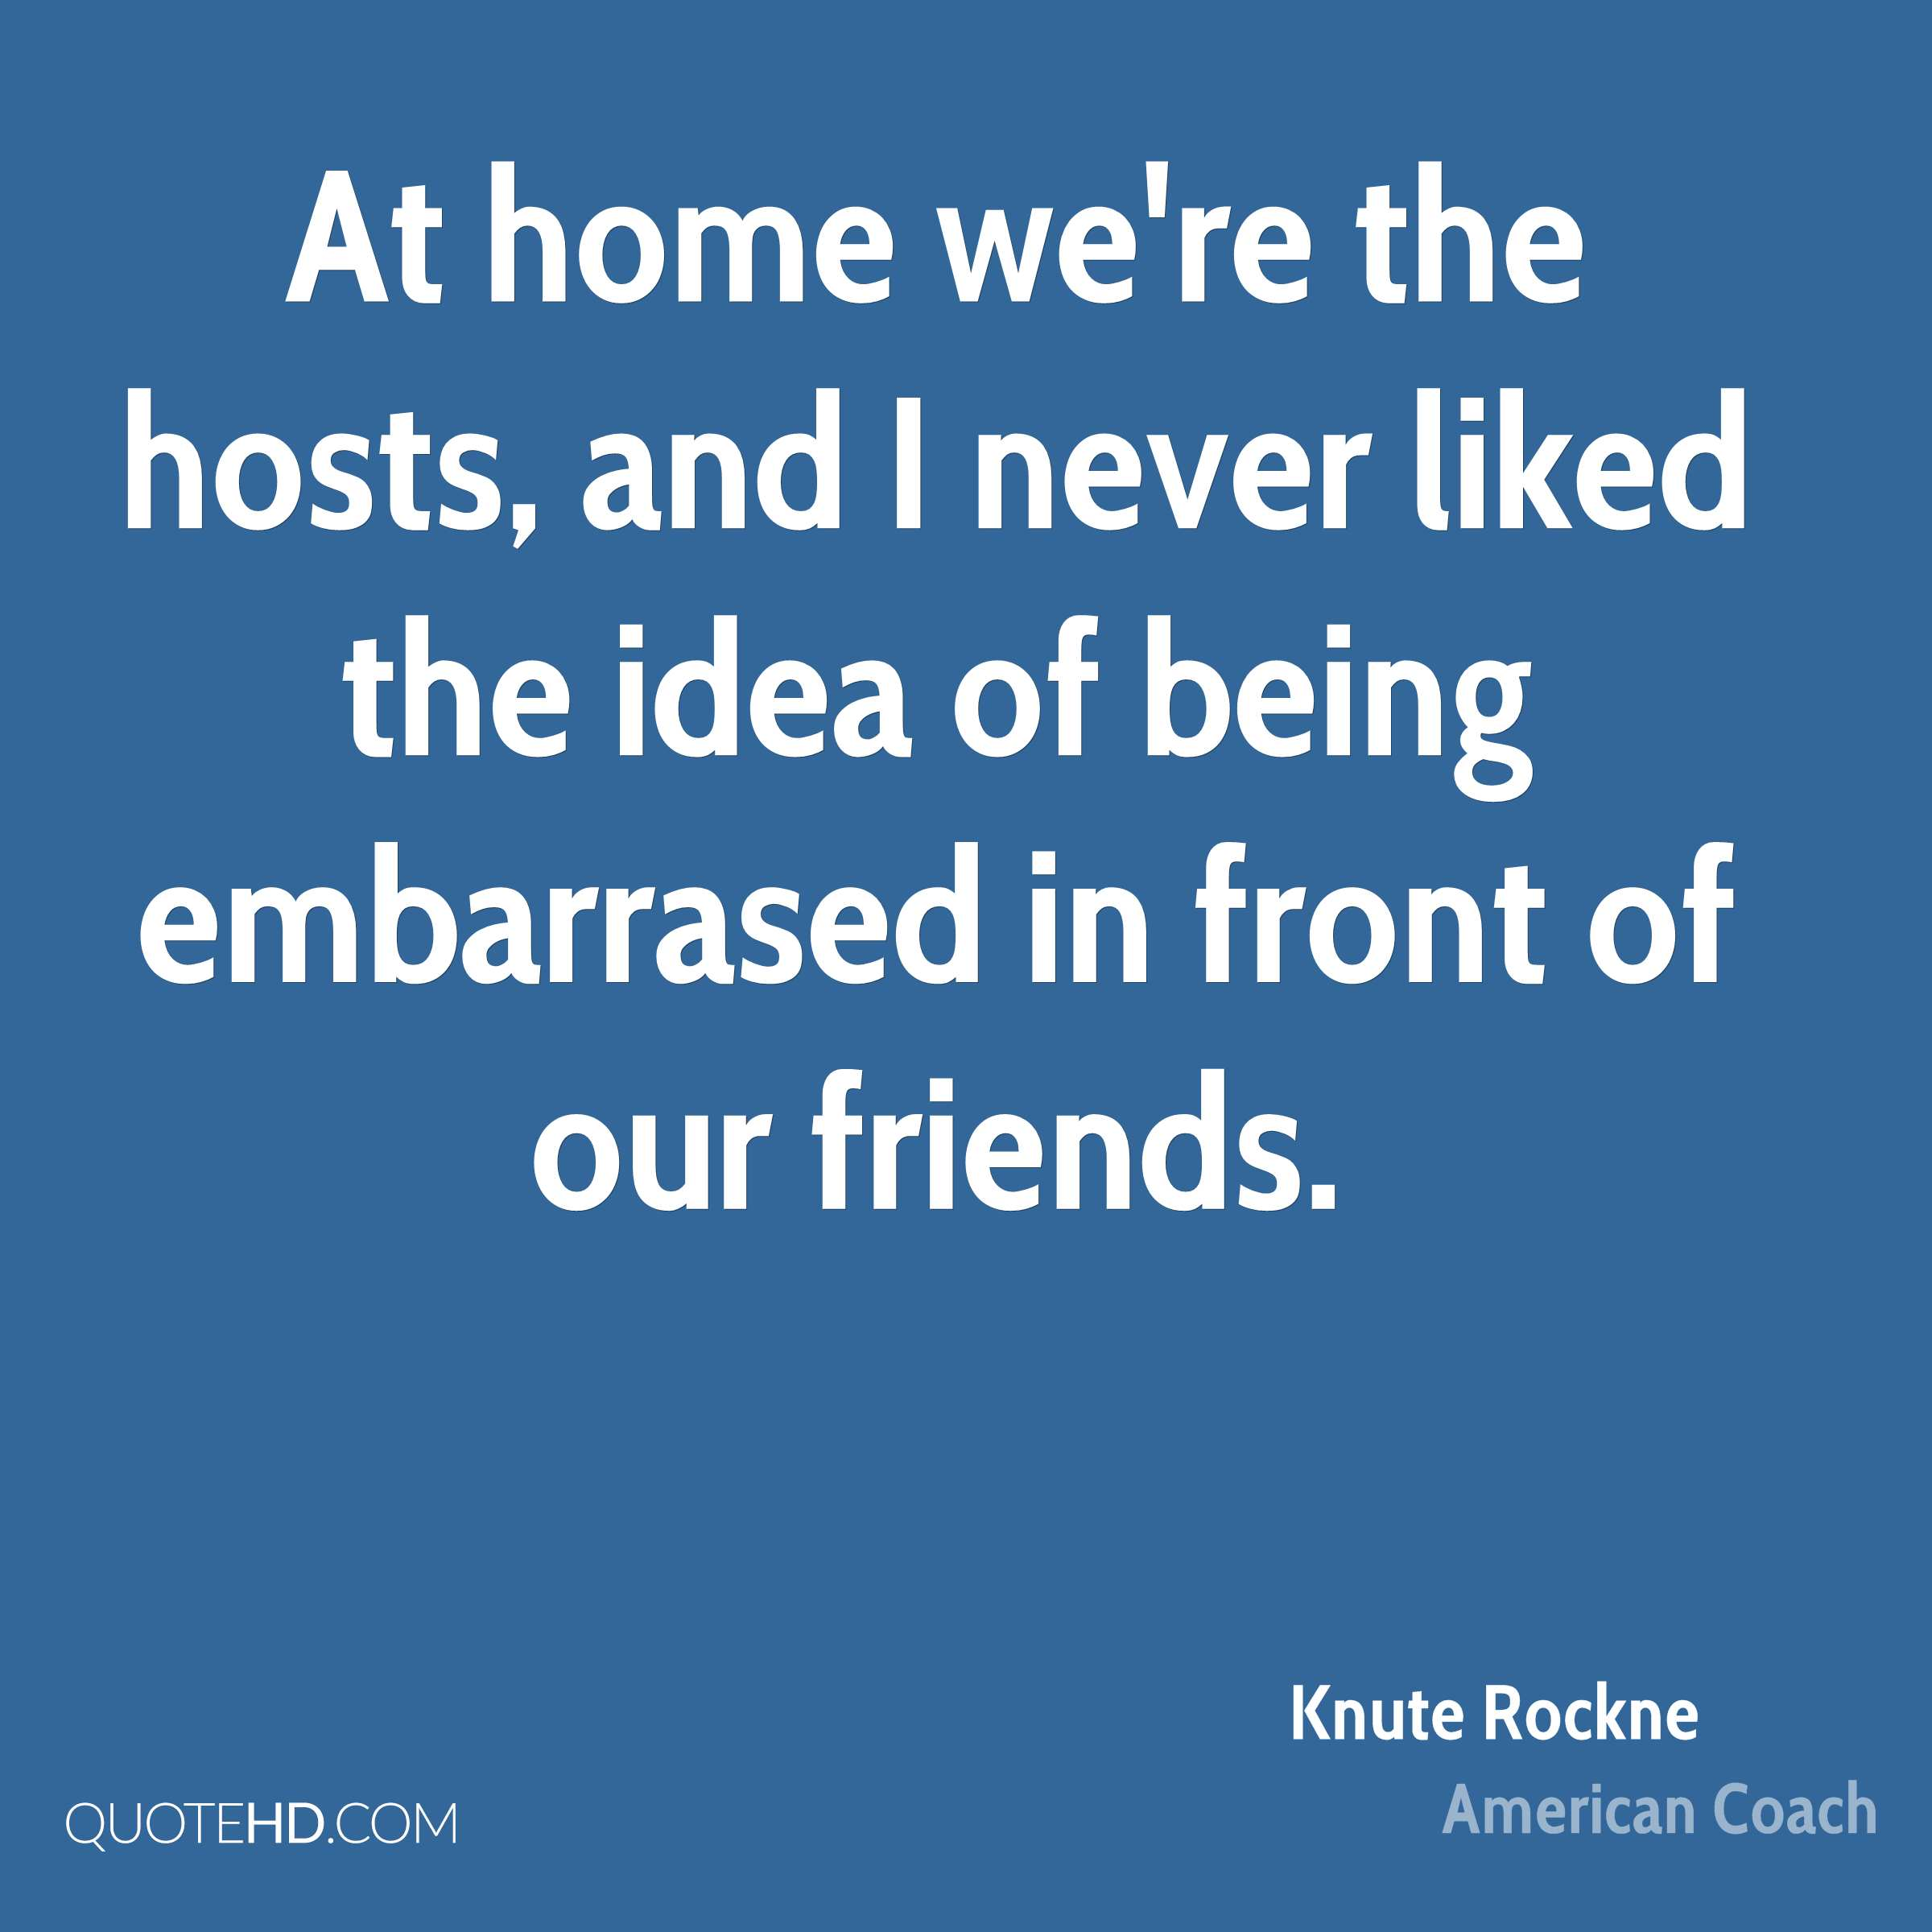 At home we're the hosts, and I never liked the idea of being embarrased in front of our friends.